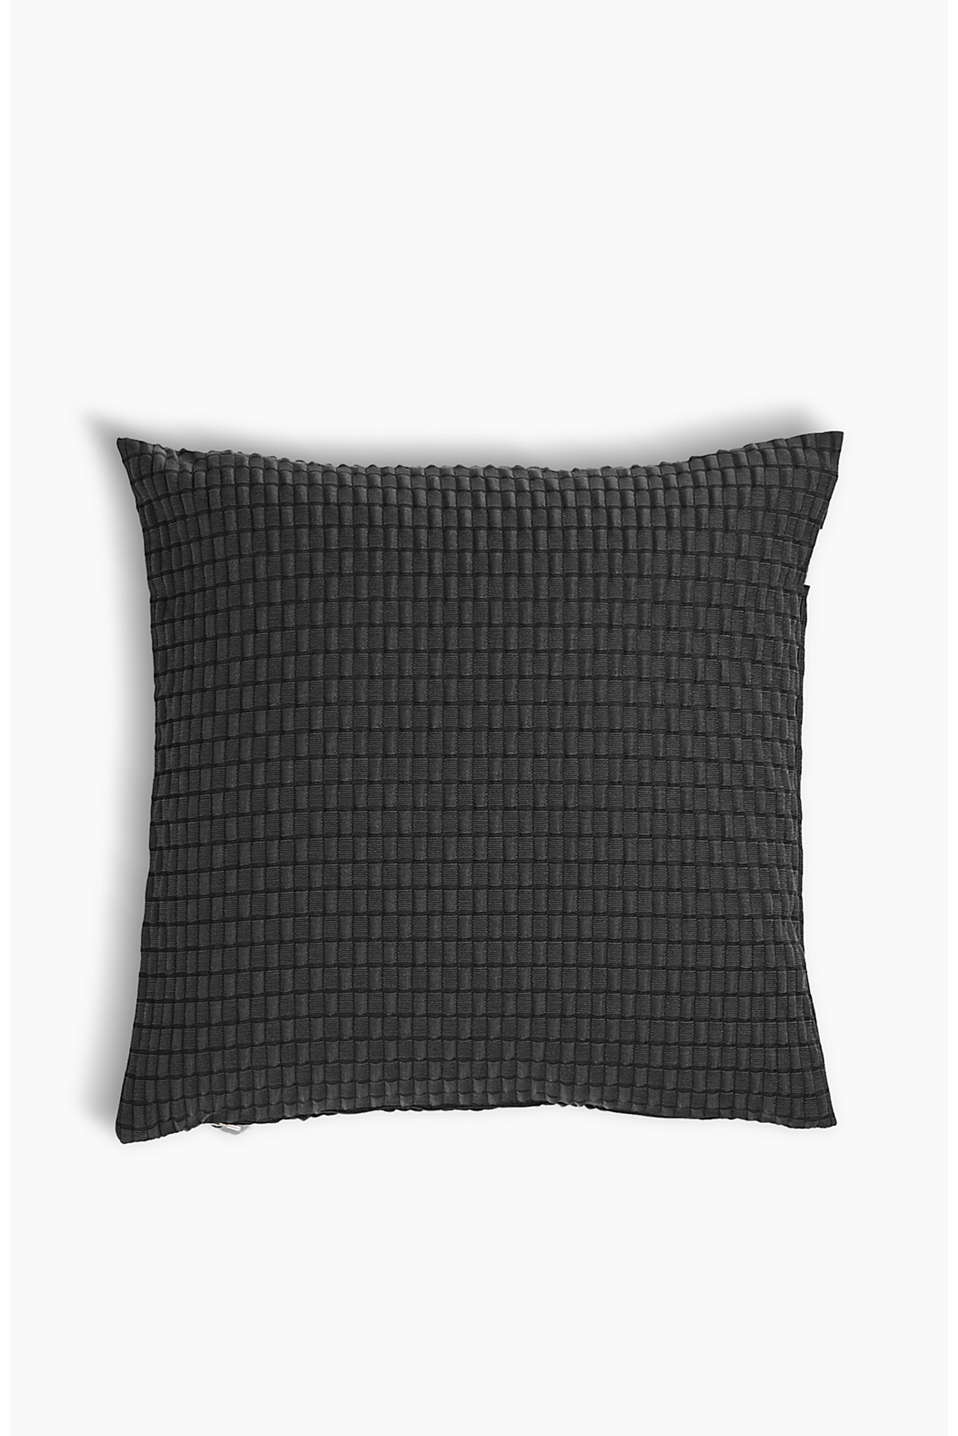 Cushion covers in two sizes, with a timeless high-low texture